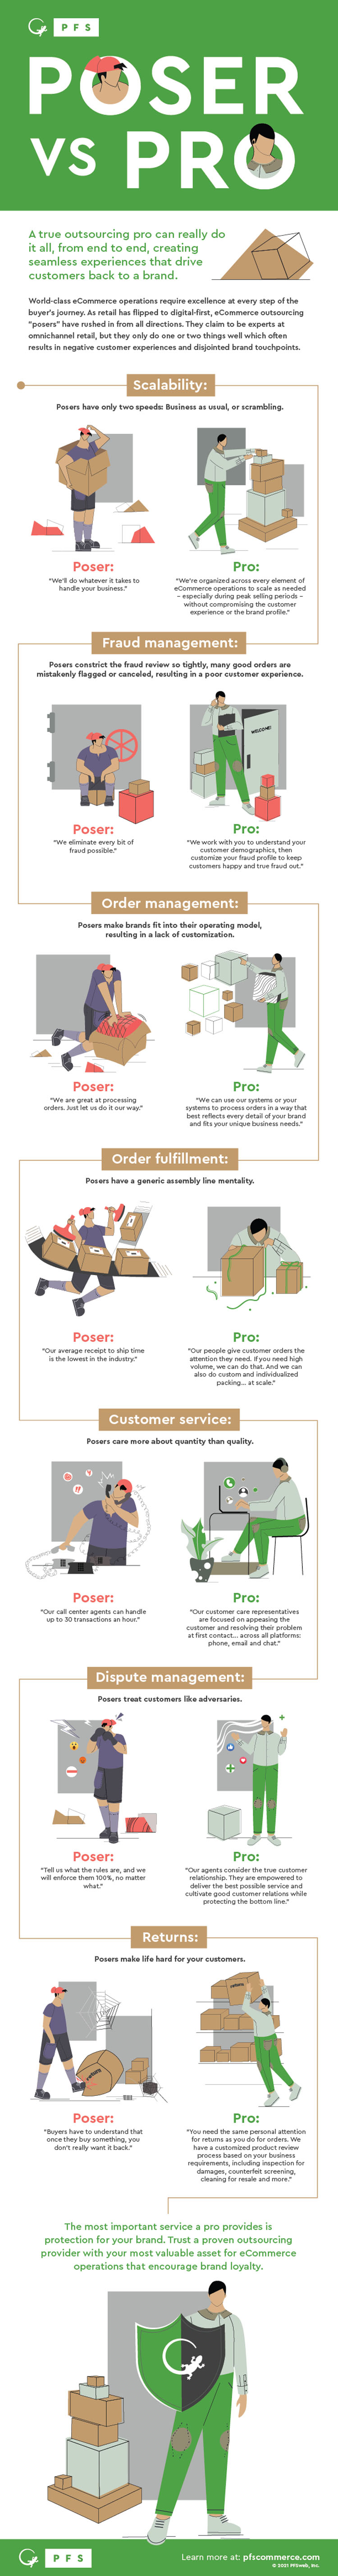 Poser vs. Pro: Which eCommerce Outsourcers Can You Trust With Your Brand?